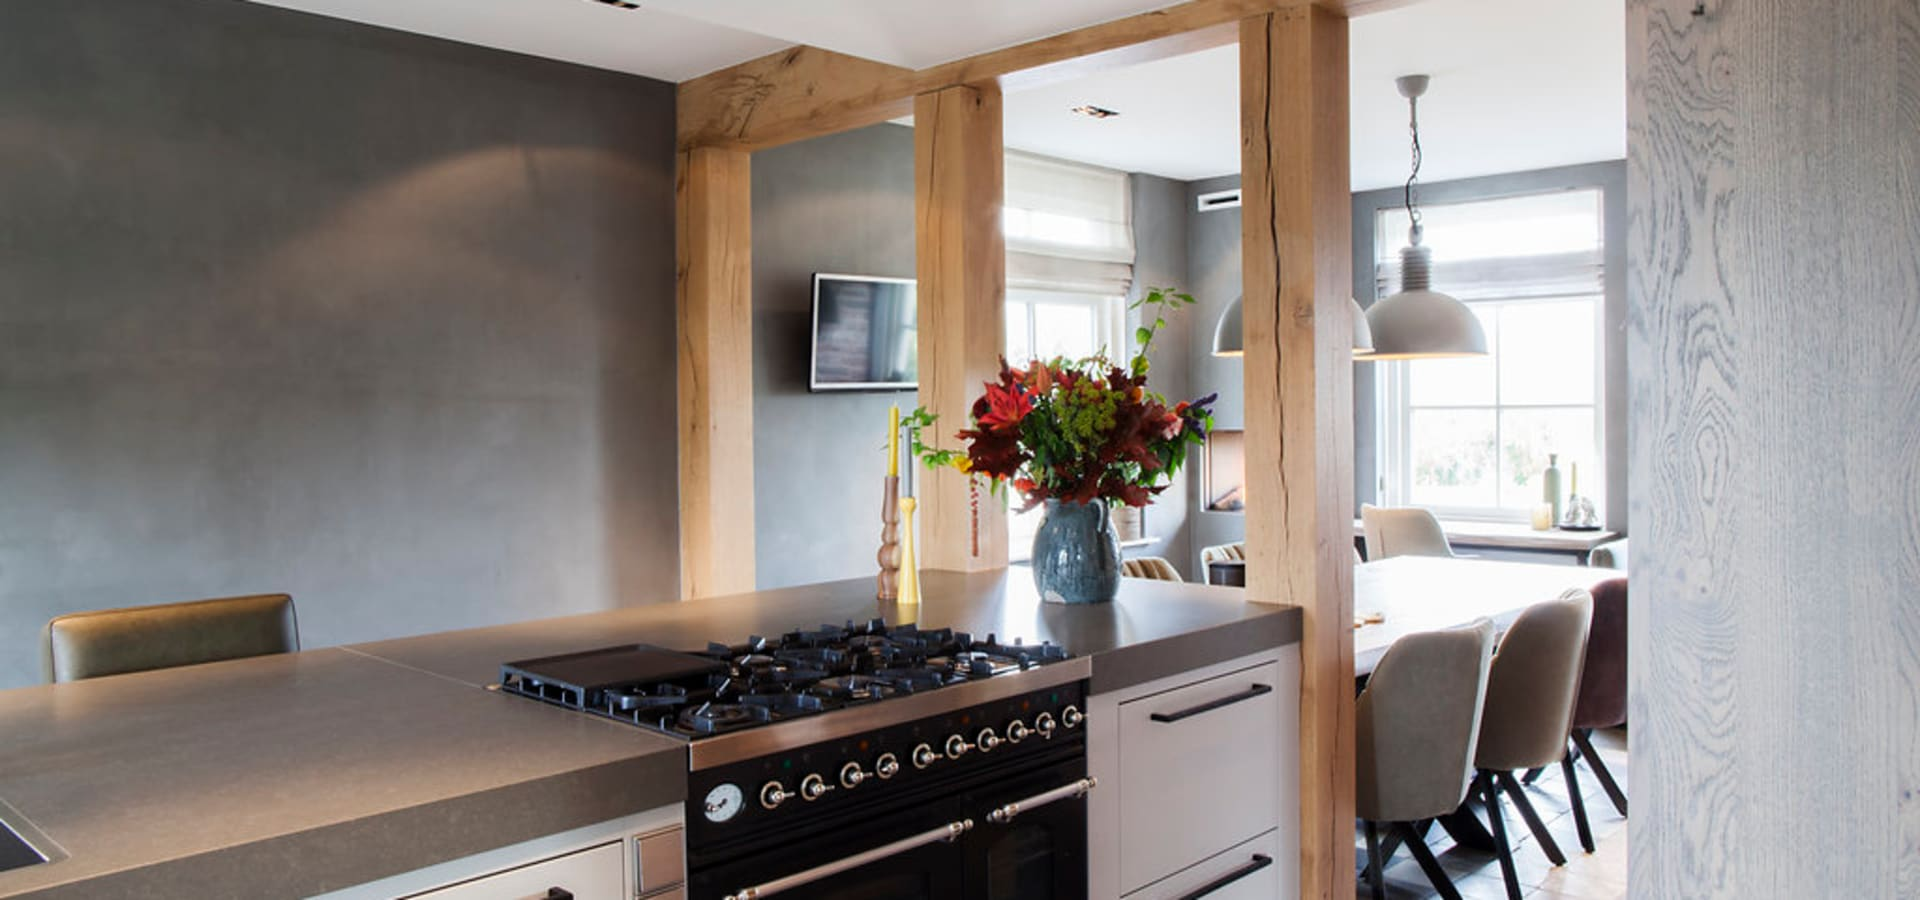 Overloop landelijk chique profesjonalista wood creations homify - Chique keuken ...